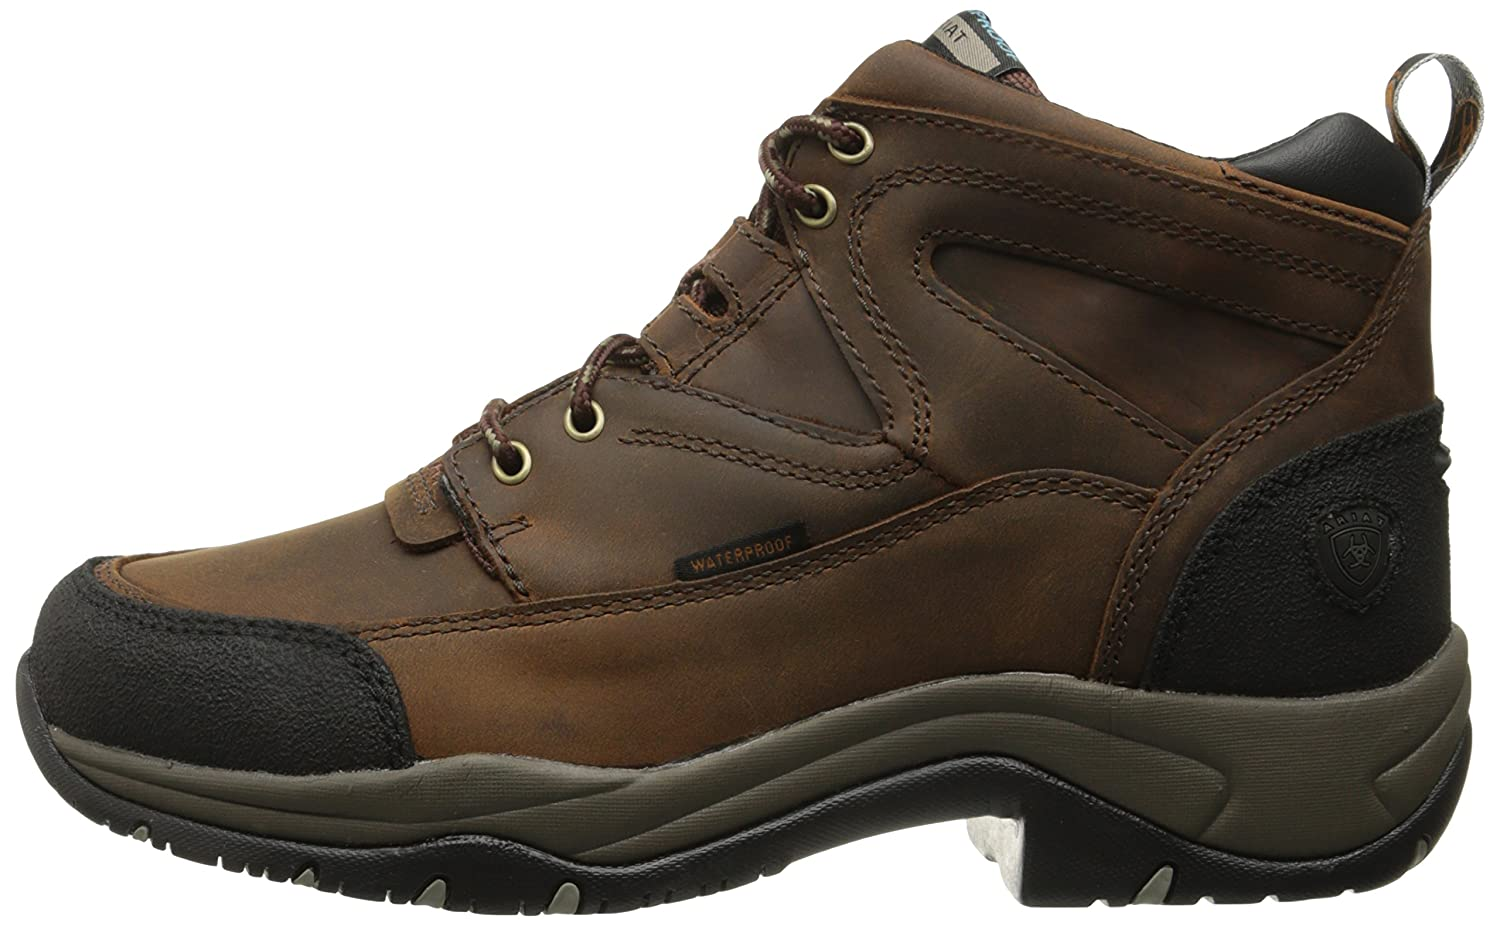 Ariat Women's Terrain H2O Hiking Boot Copper B0012MMWKG 7.5 B(M) US|Copper